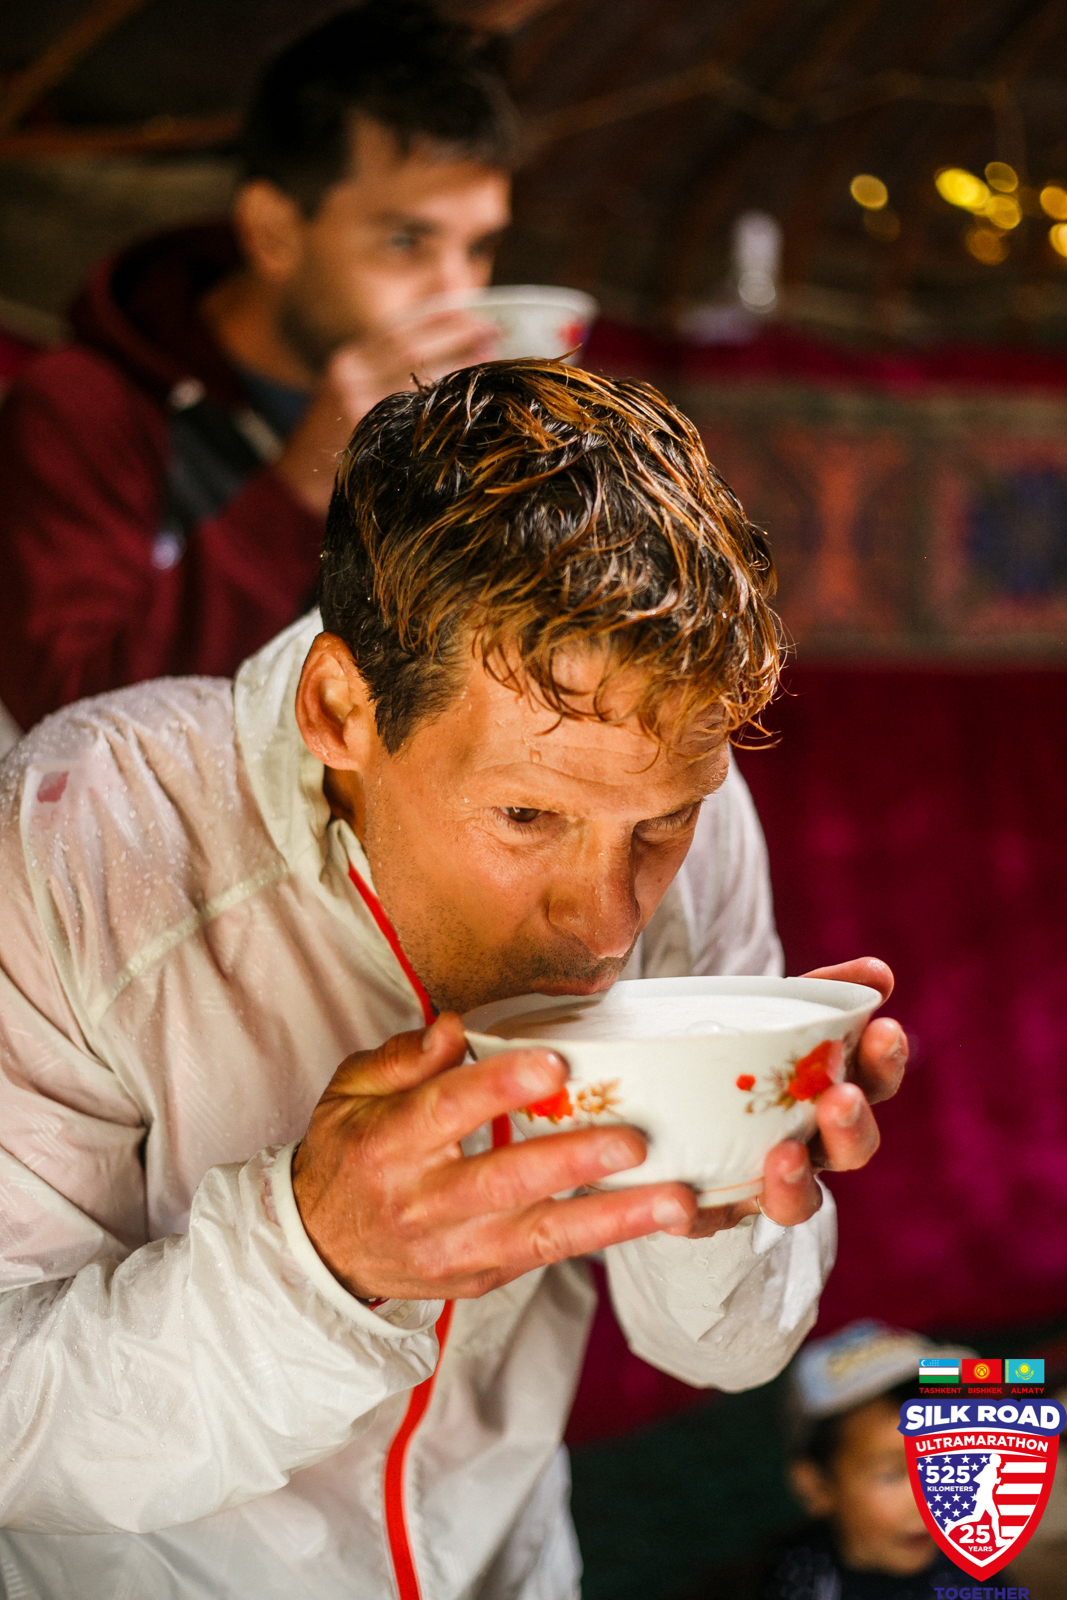 Dean drinking kumis or fermented horse milk, a Kyrgyz staple